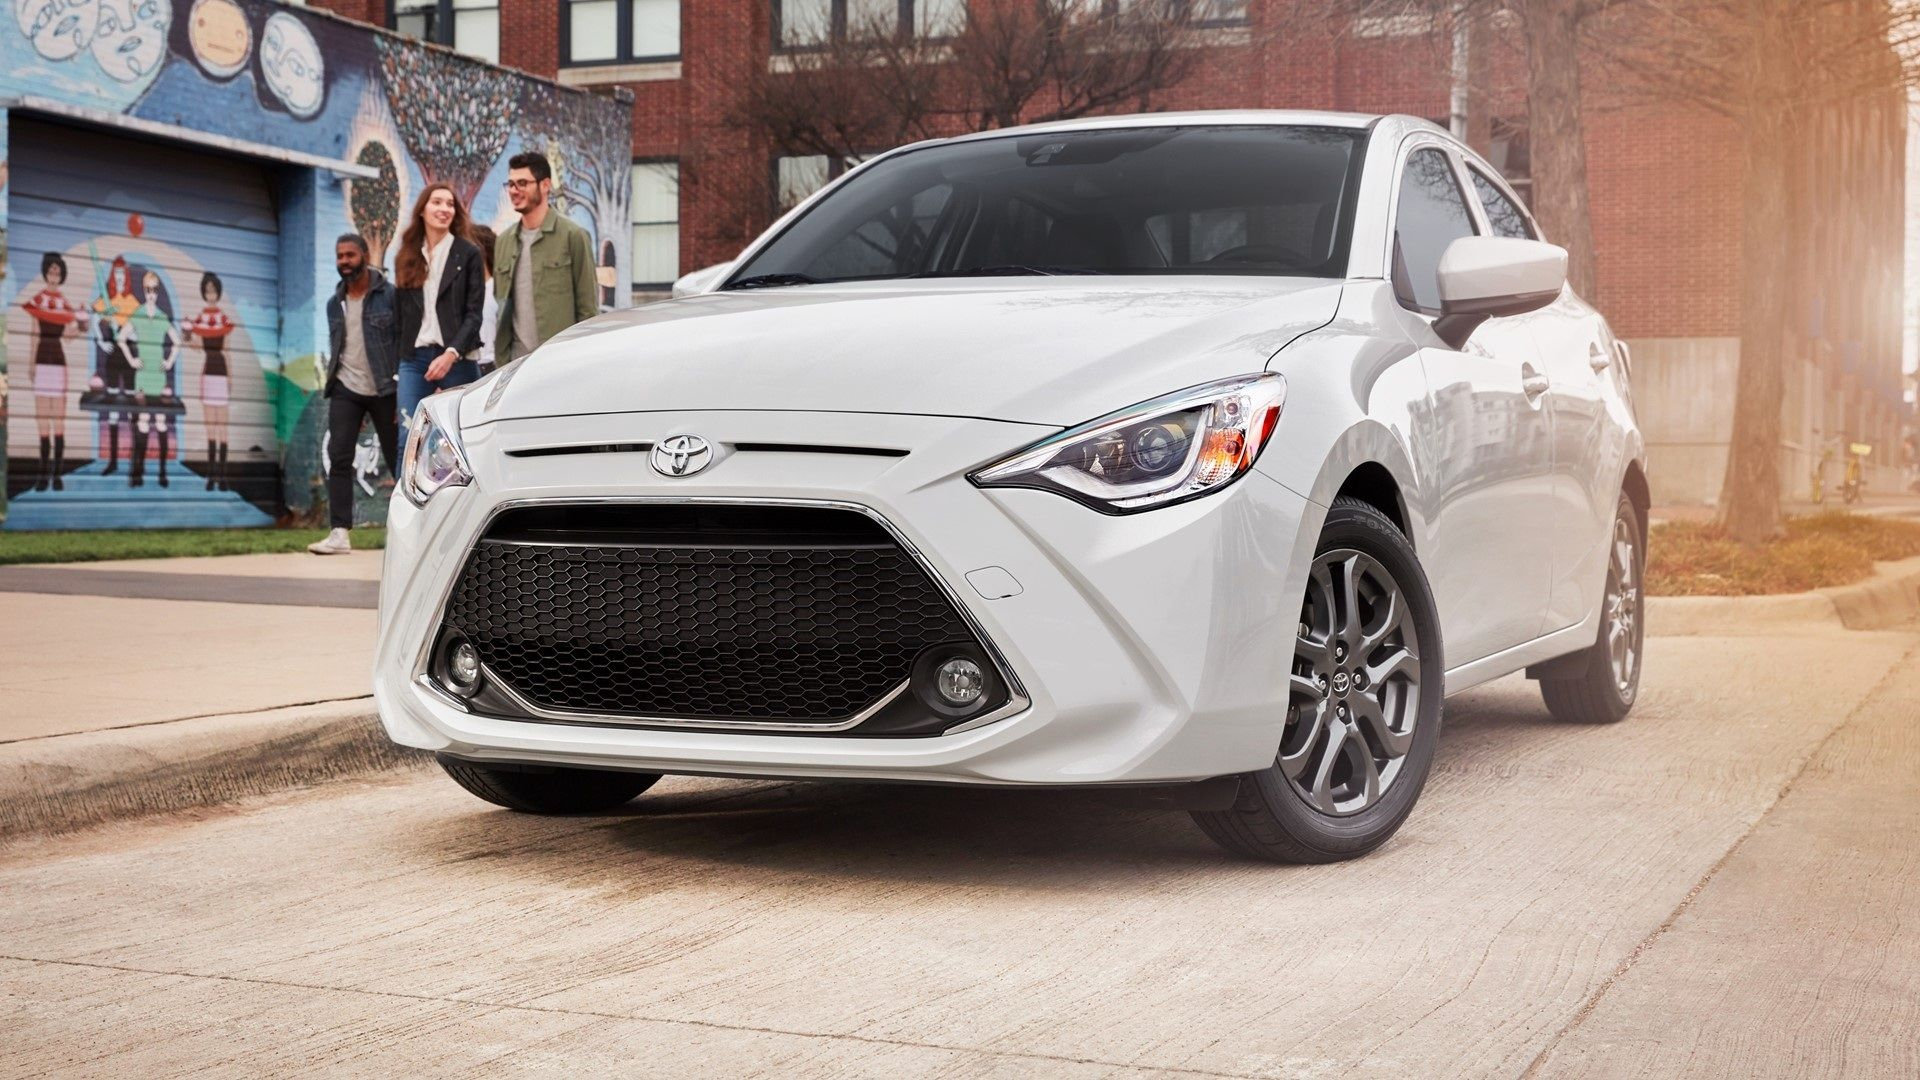 2019 Toyota Yaris Sedan First Drive Price Performance And Review Toyota Toyota Auris Car